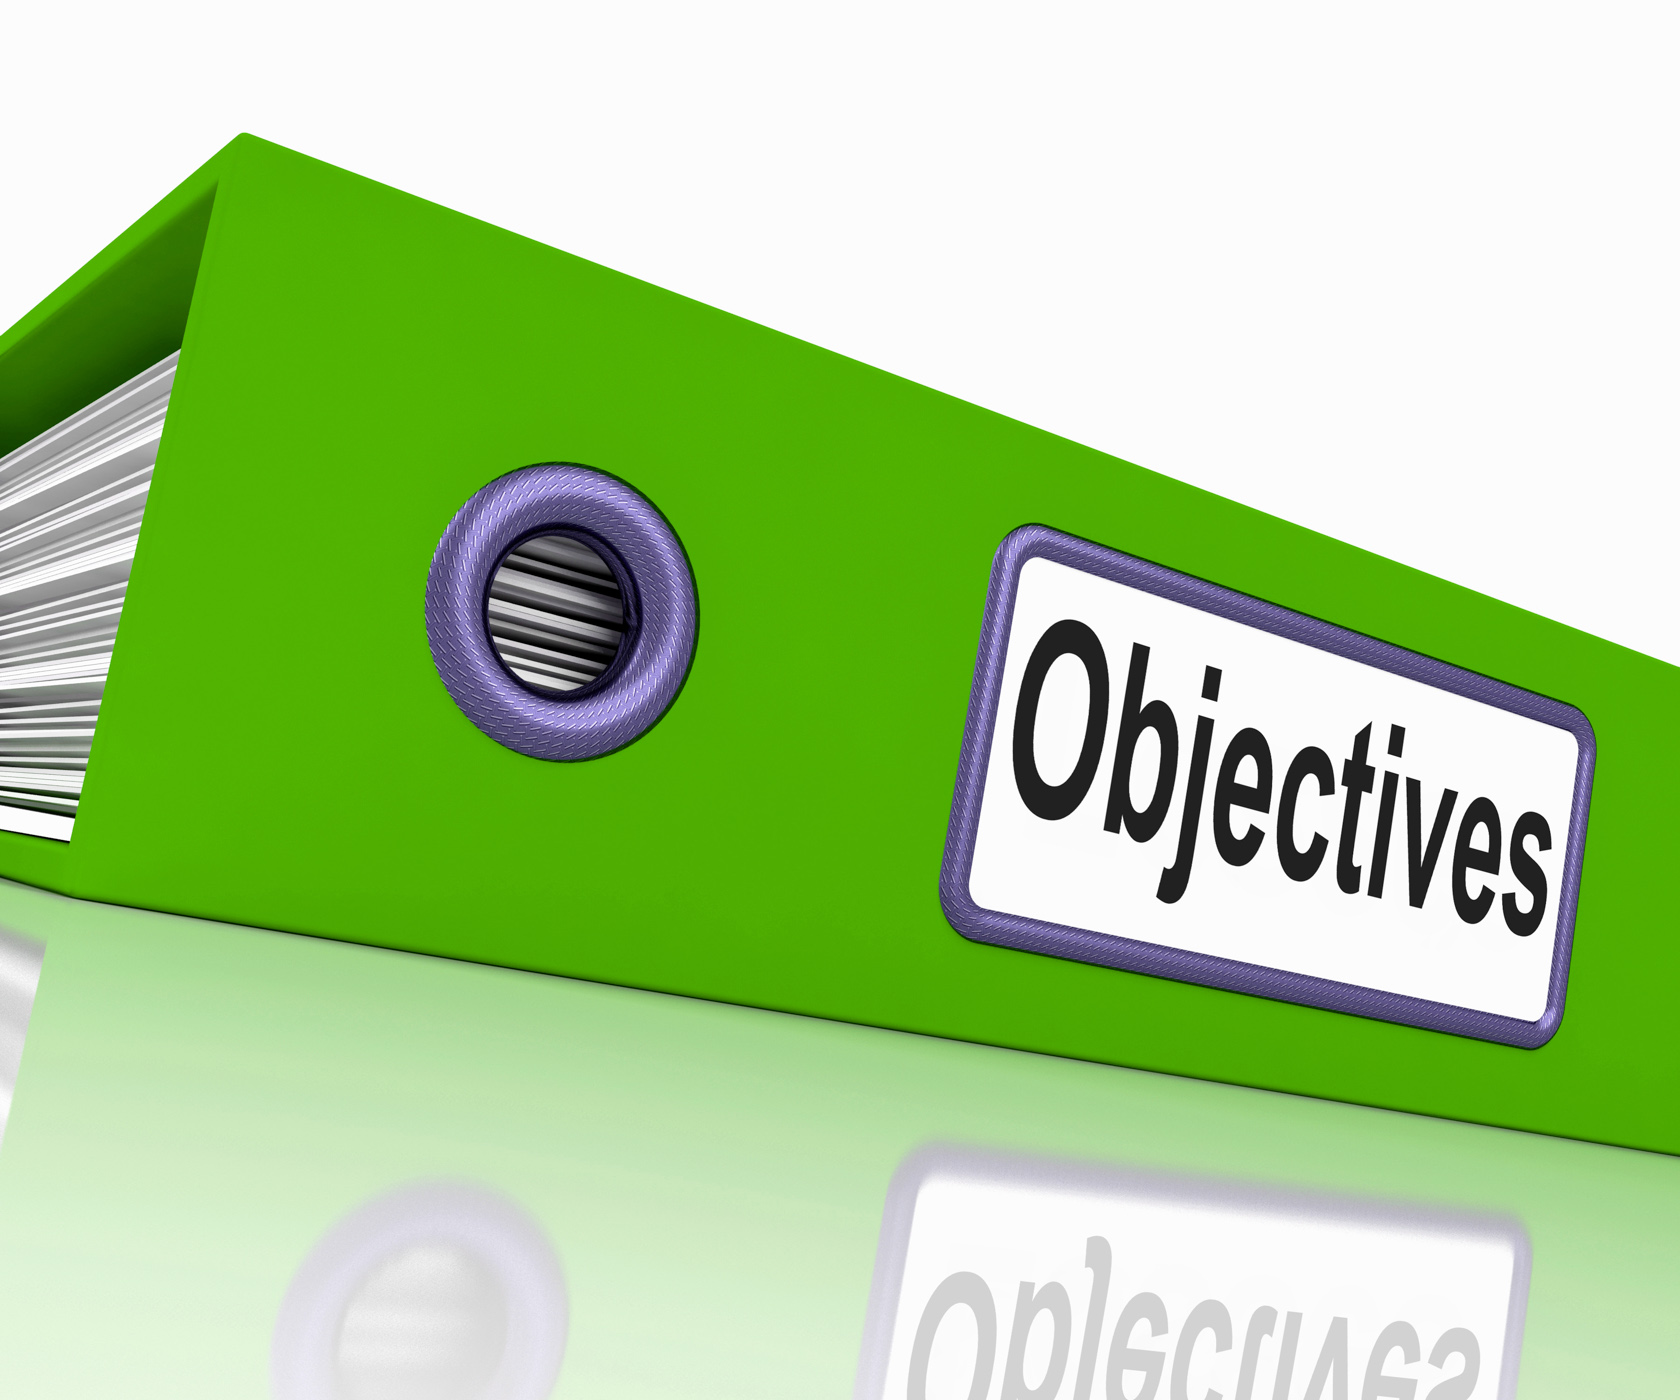 Objectives file means correspondence business and intent photo